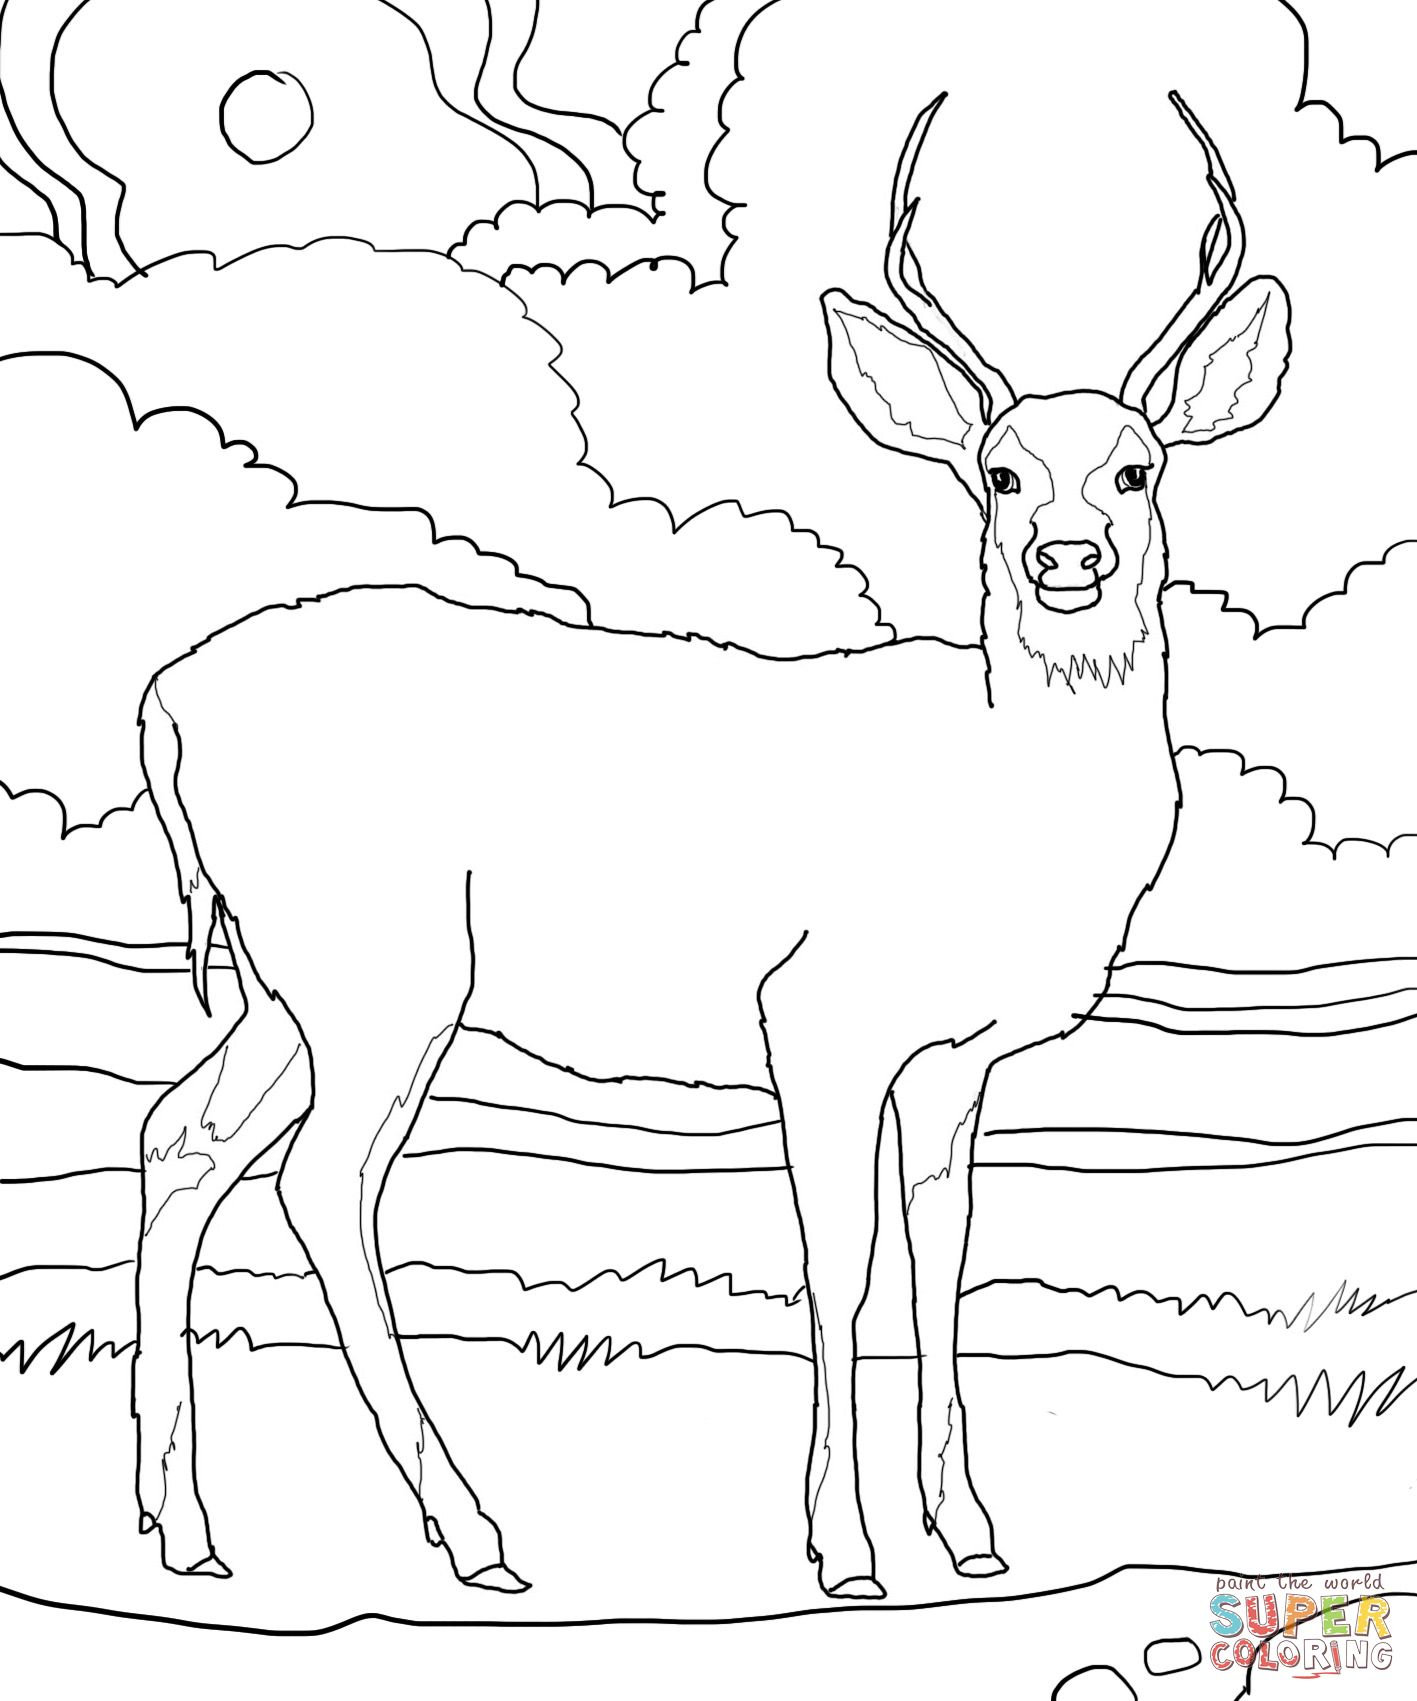 Mule Deer Coloring Page Supercoloring Com Deer Coloring Pages Bird Coloring Pages Animal Coloring Pages